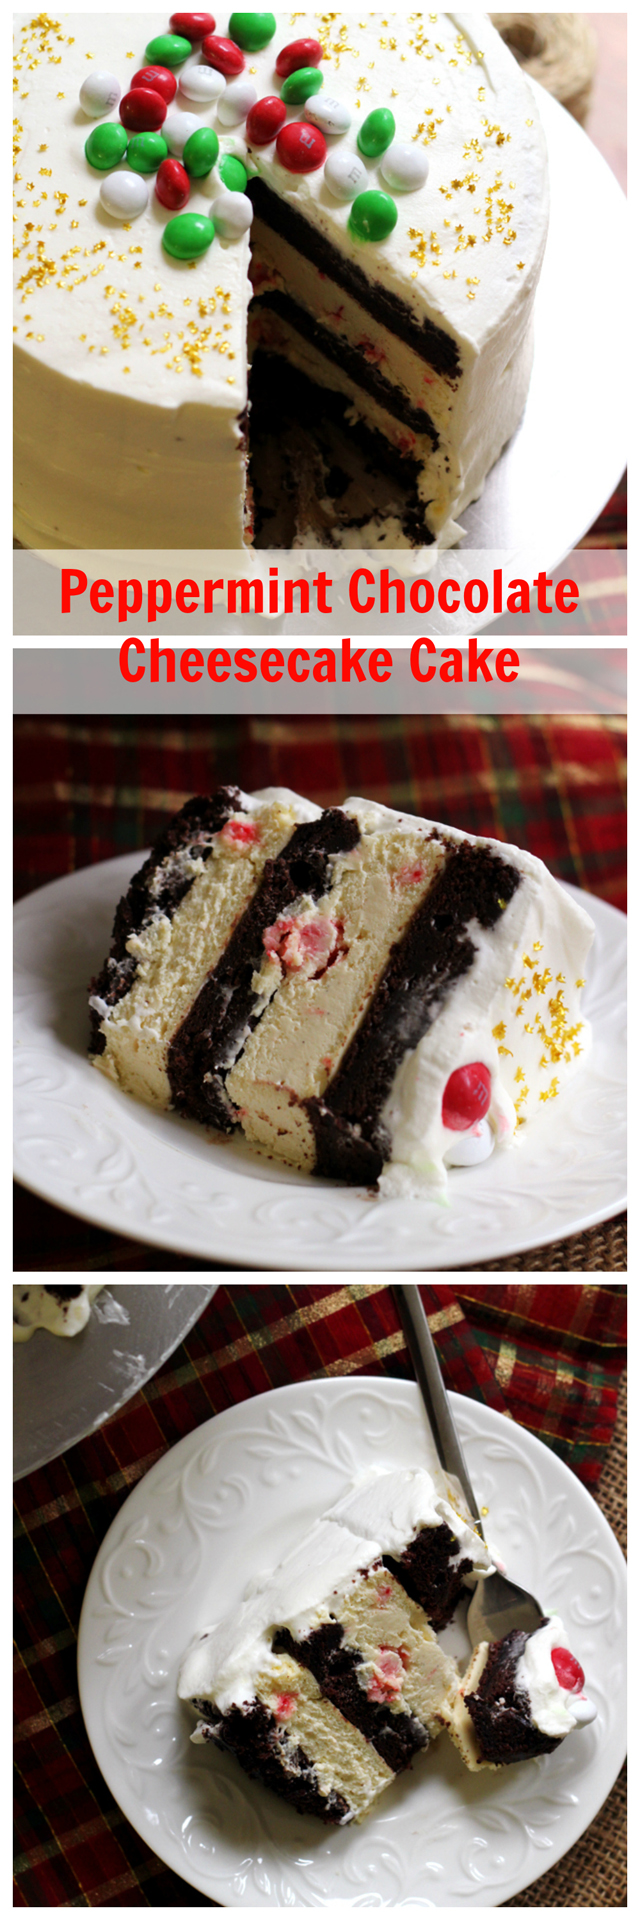 peppermint chocolate cheesecake cake